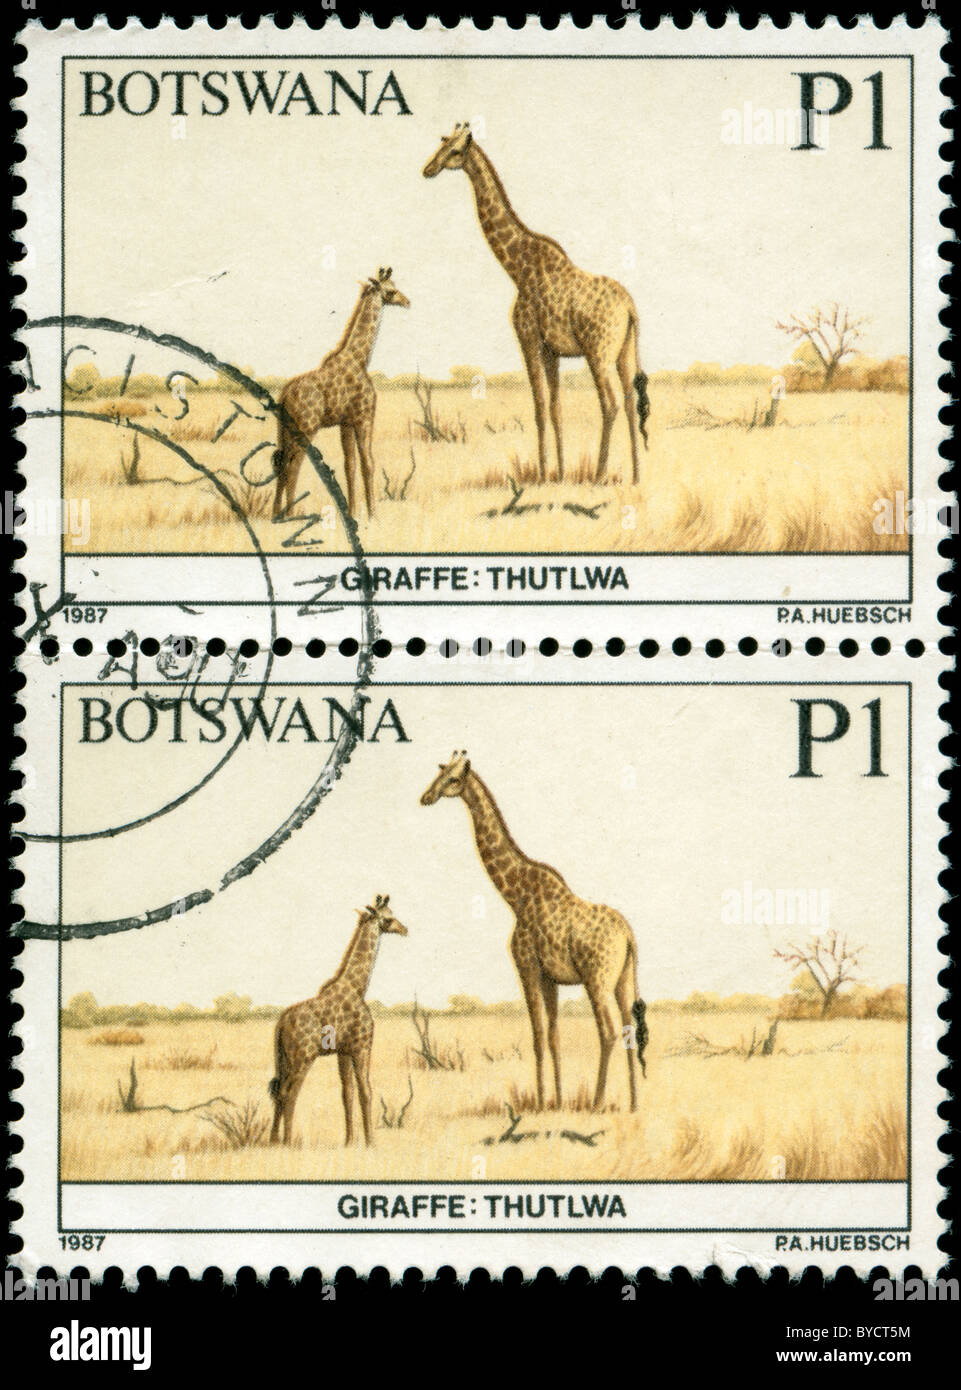 Sheet of two stamps from Botswana with picture of giraffes Stock Photo